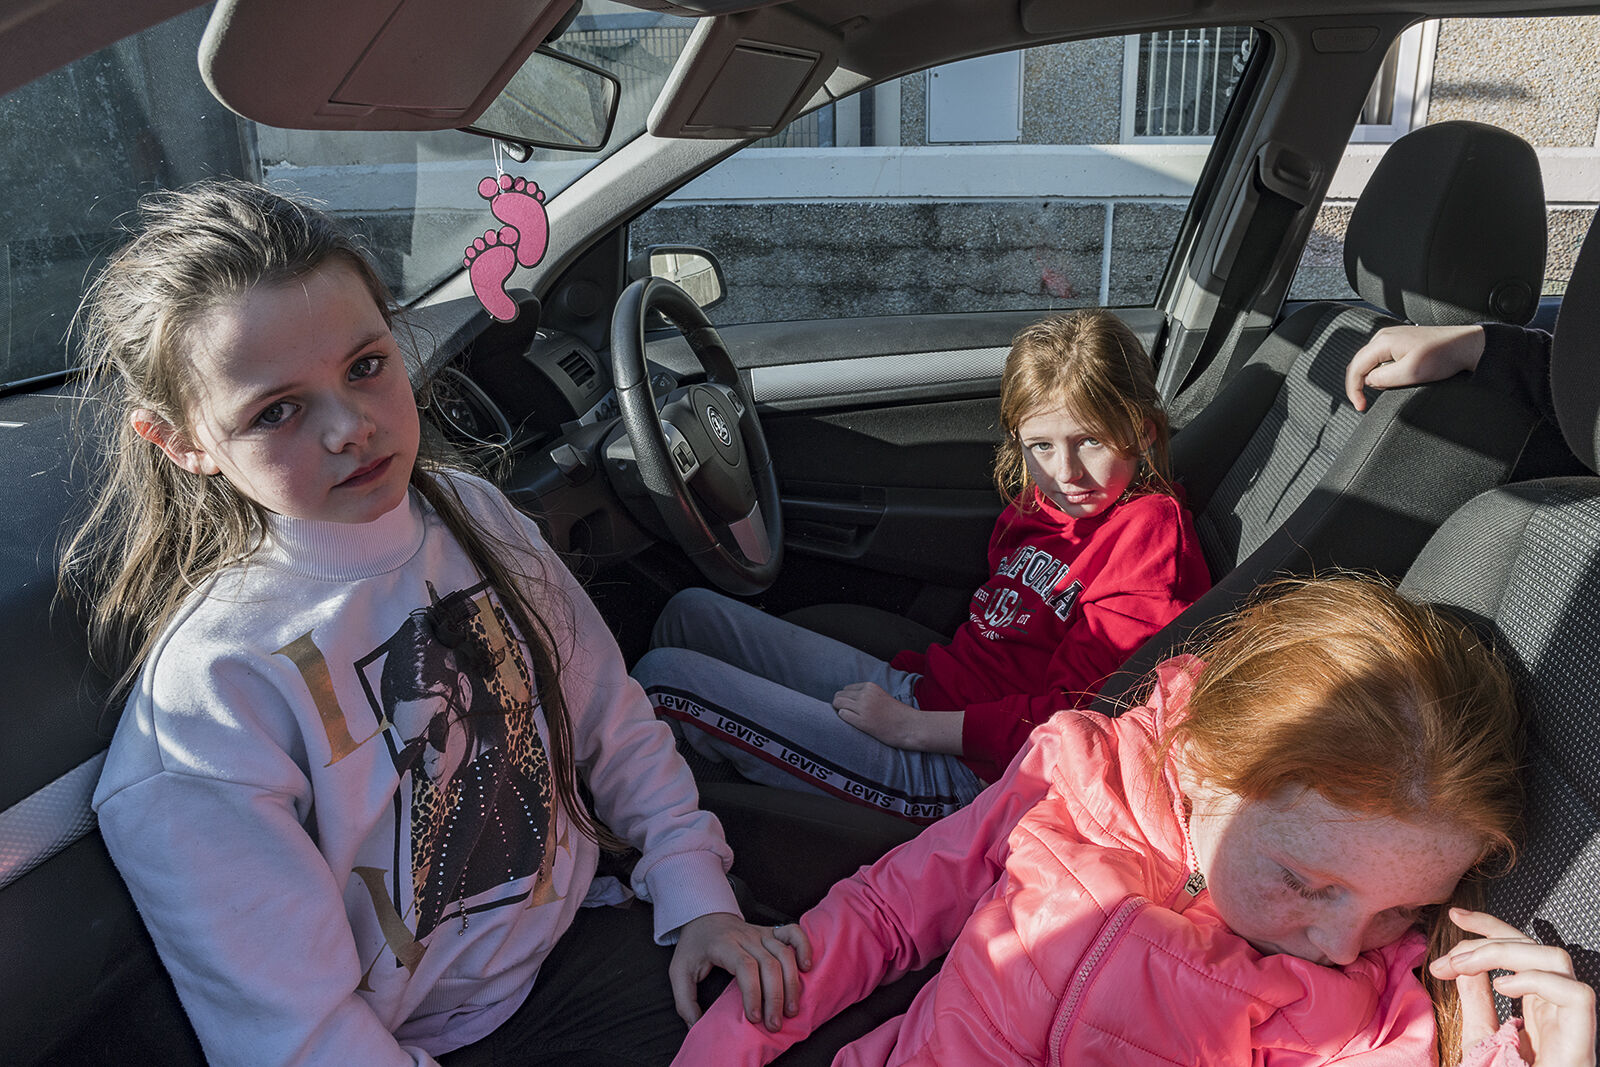 Labre Park Girls in Car, Dublin, Ireland 2020